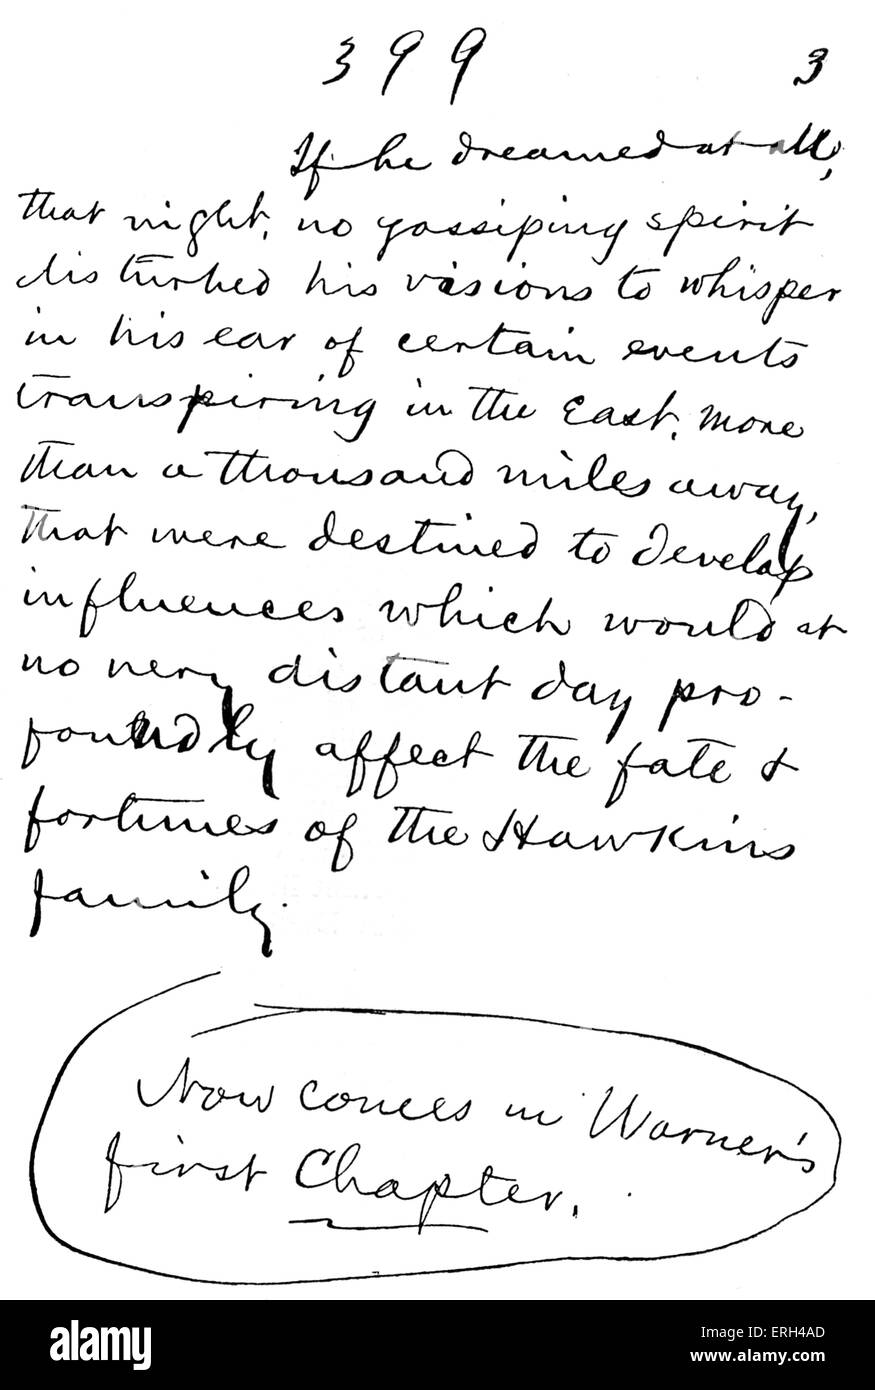 Mark Twain 's hand-written autograph manuscript of 'The Gilded Age' . The end of the first instalment. - Stock Image